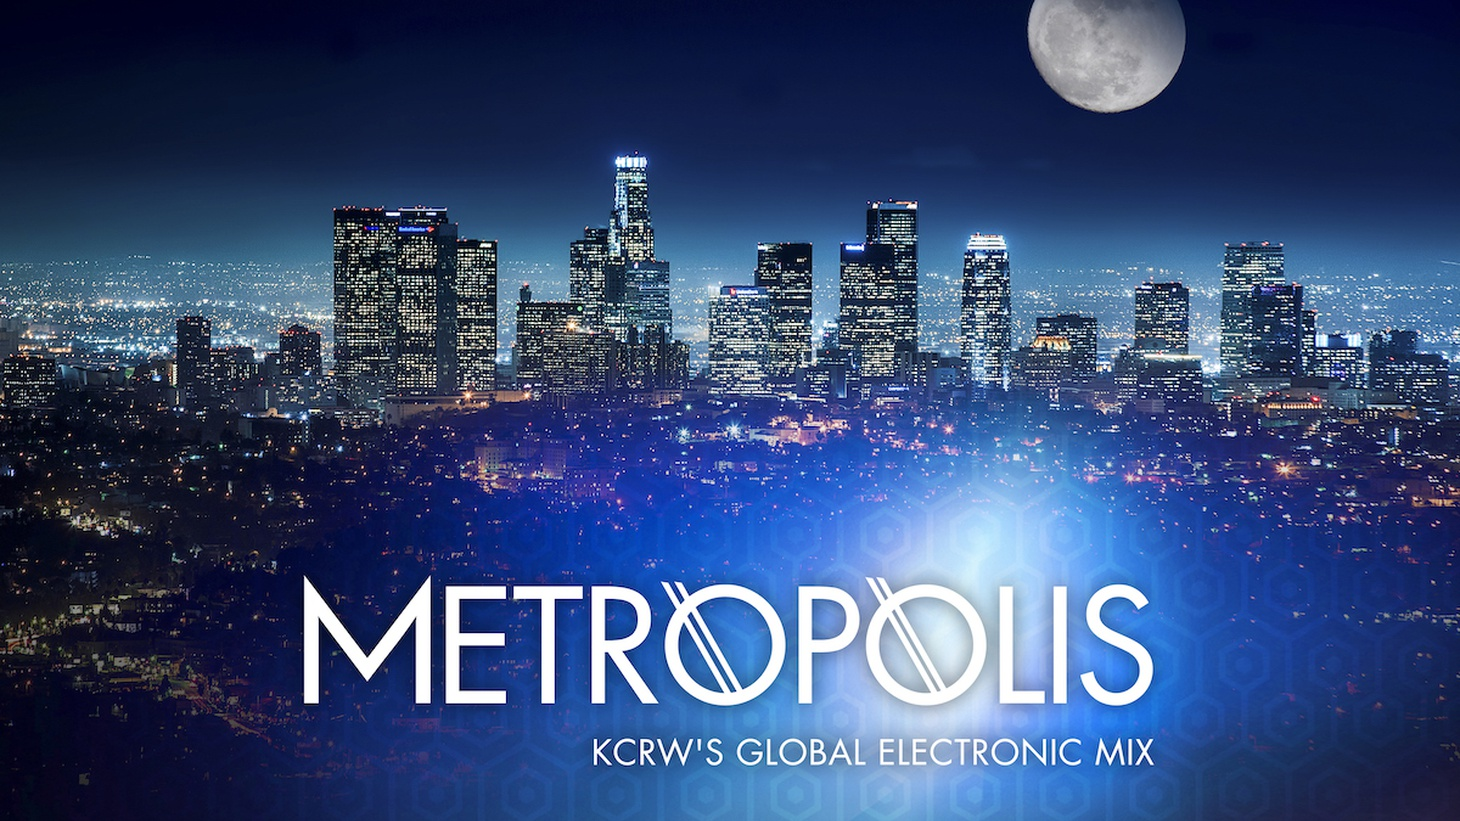 BT stops by Metropolis to talk about the new Grammy Awards category for Best Electronica Album.